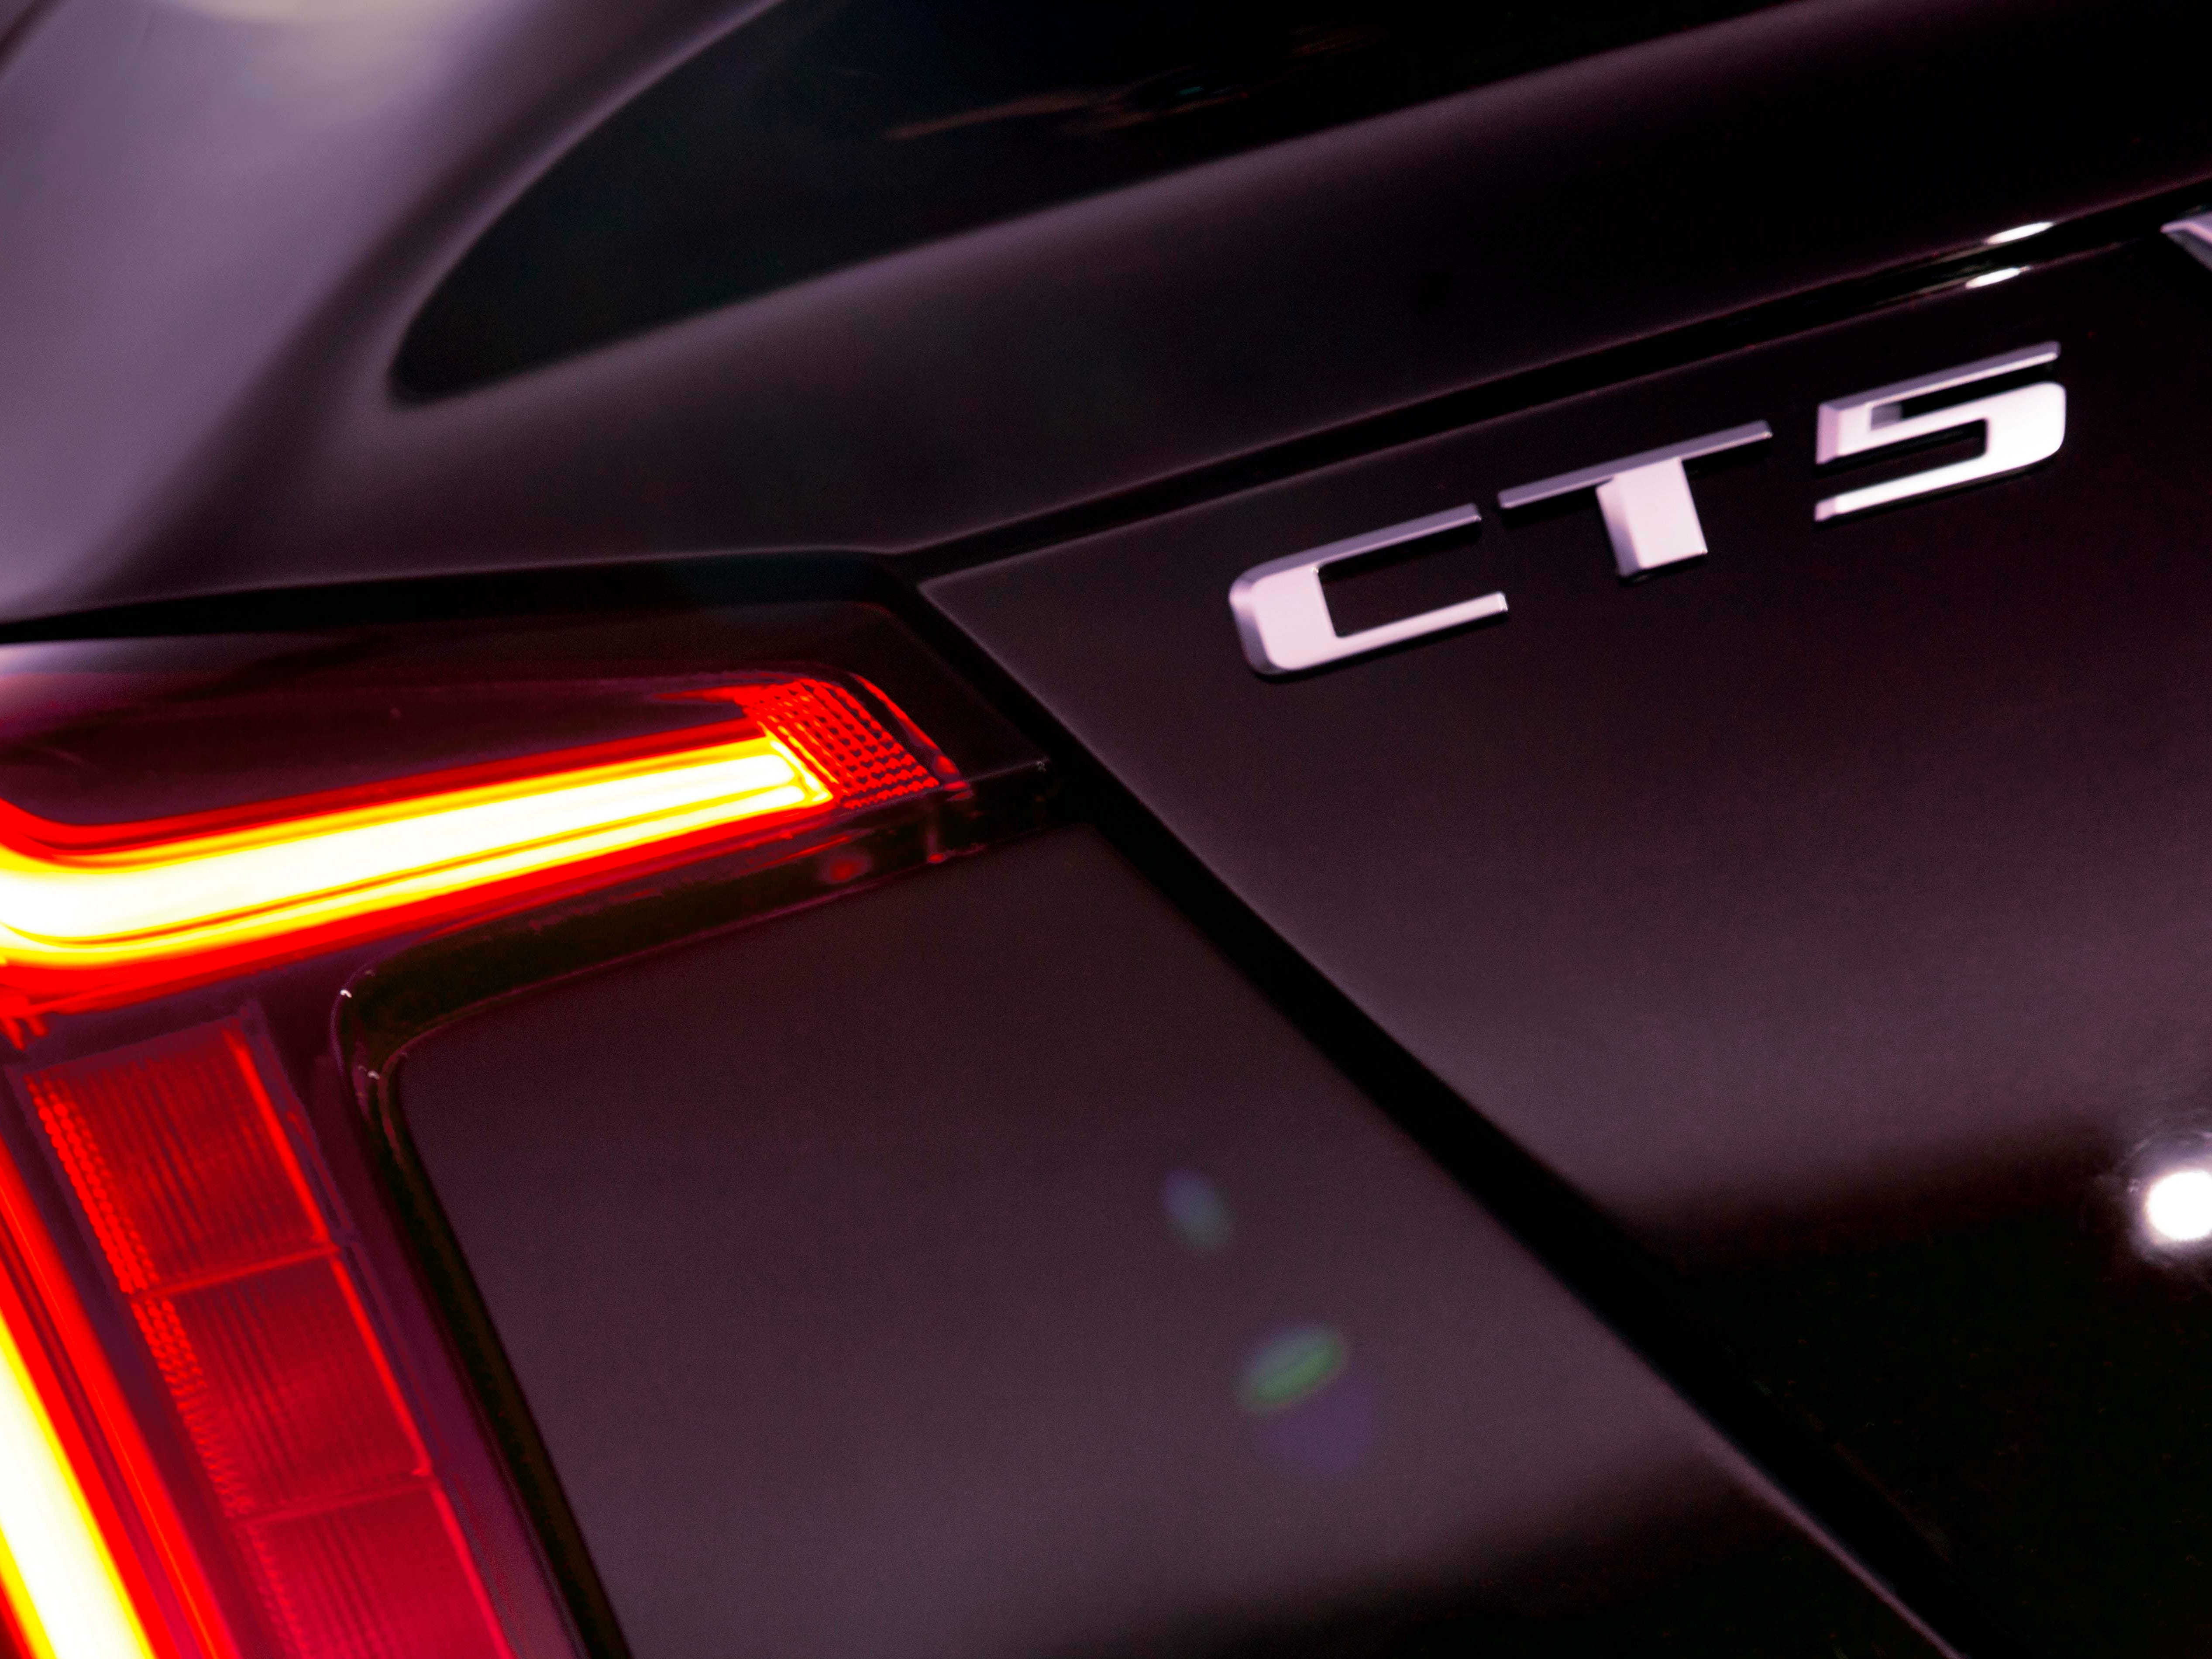 The Cadillac CT5 will be built at GM's Lansing Grand River facility and will make its public debut in April at the New York International Auto Show.